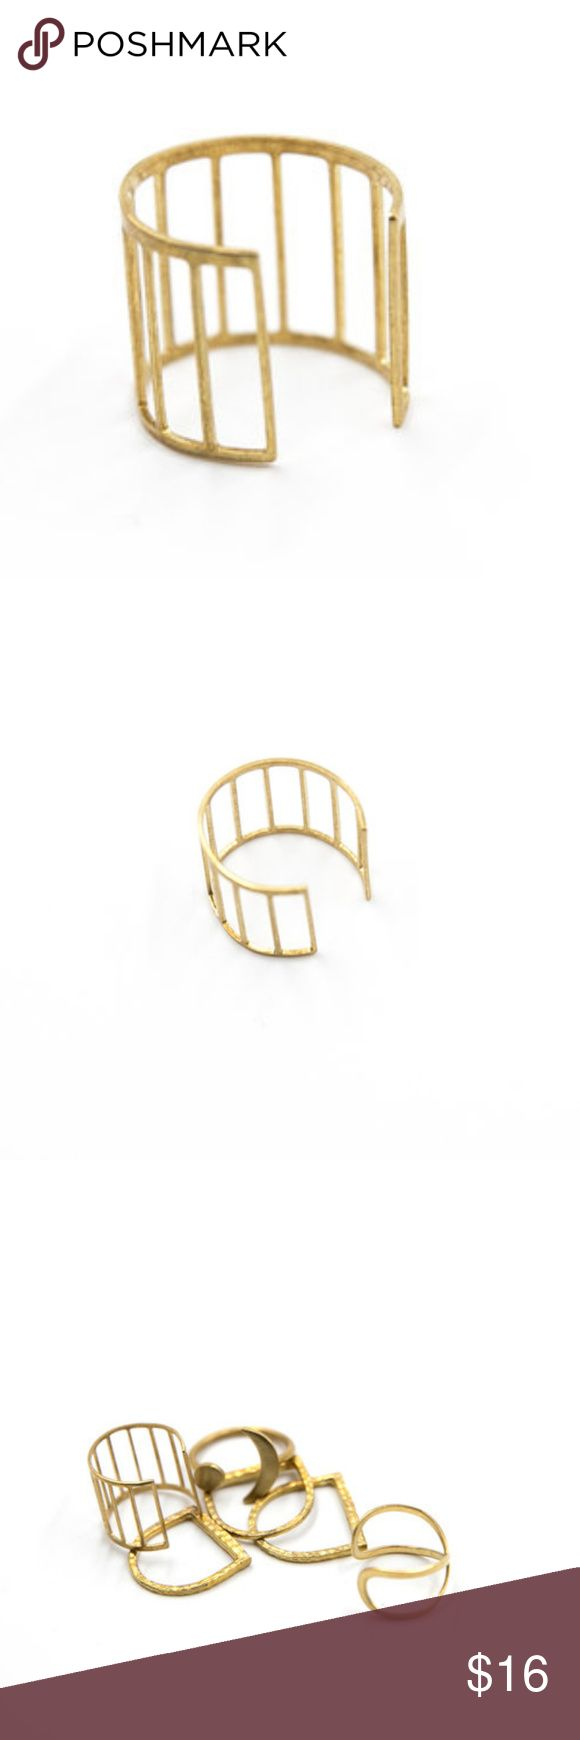 Ladder Ring Raw brass adjustable ladder ring.  Handcrafted. Jewelry Rings